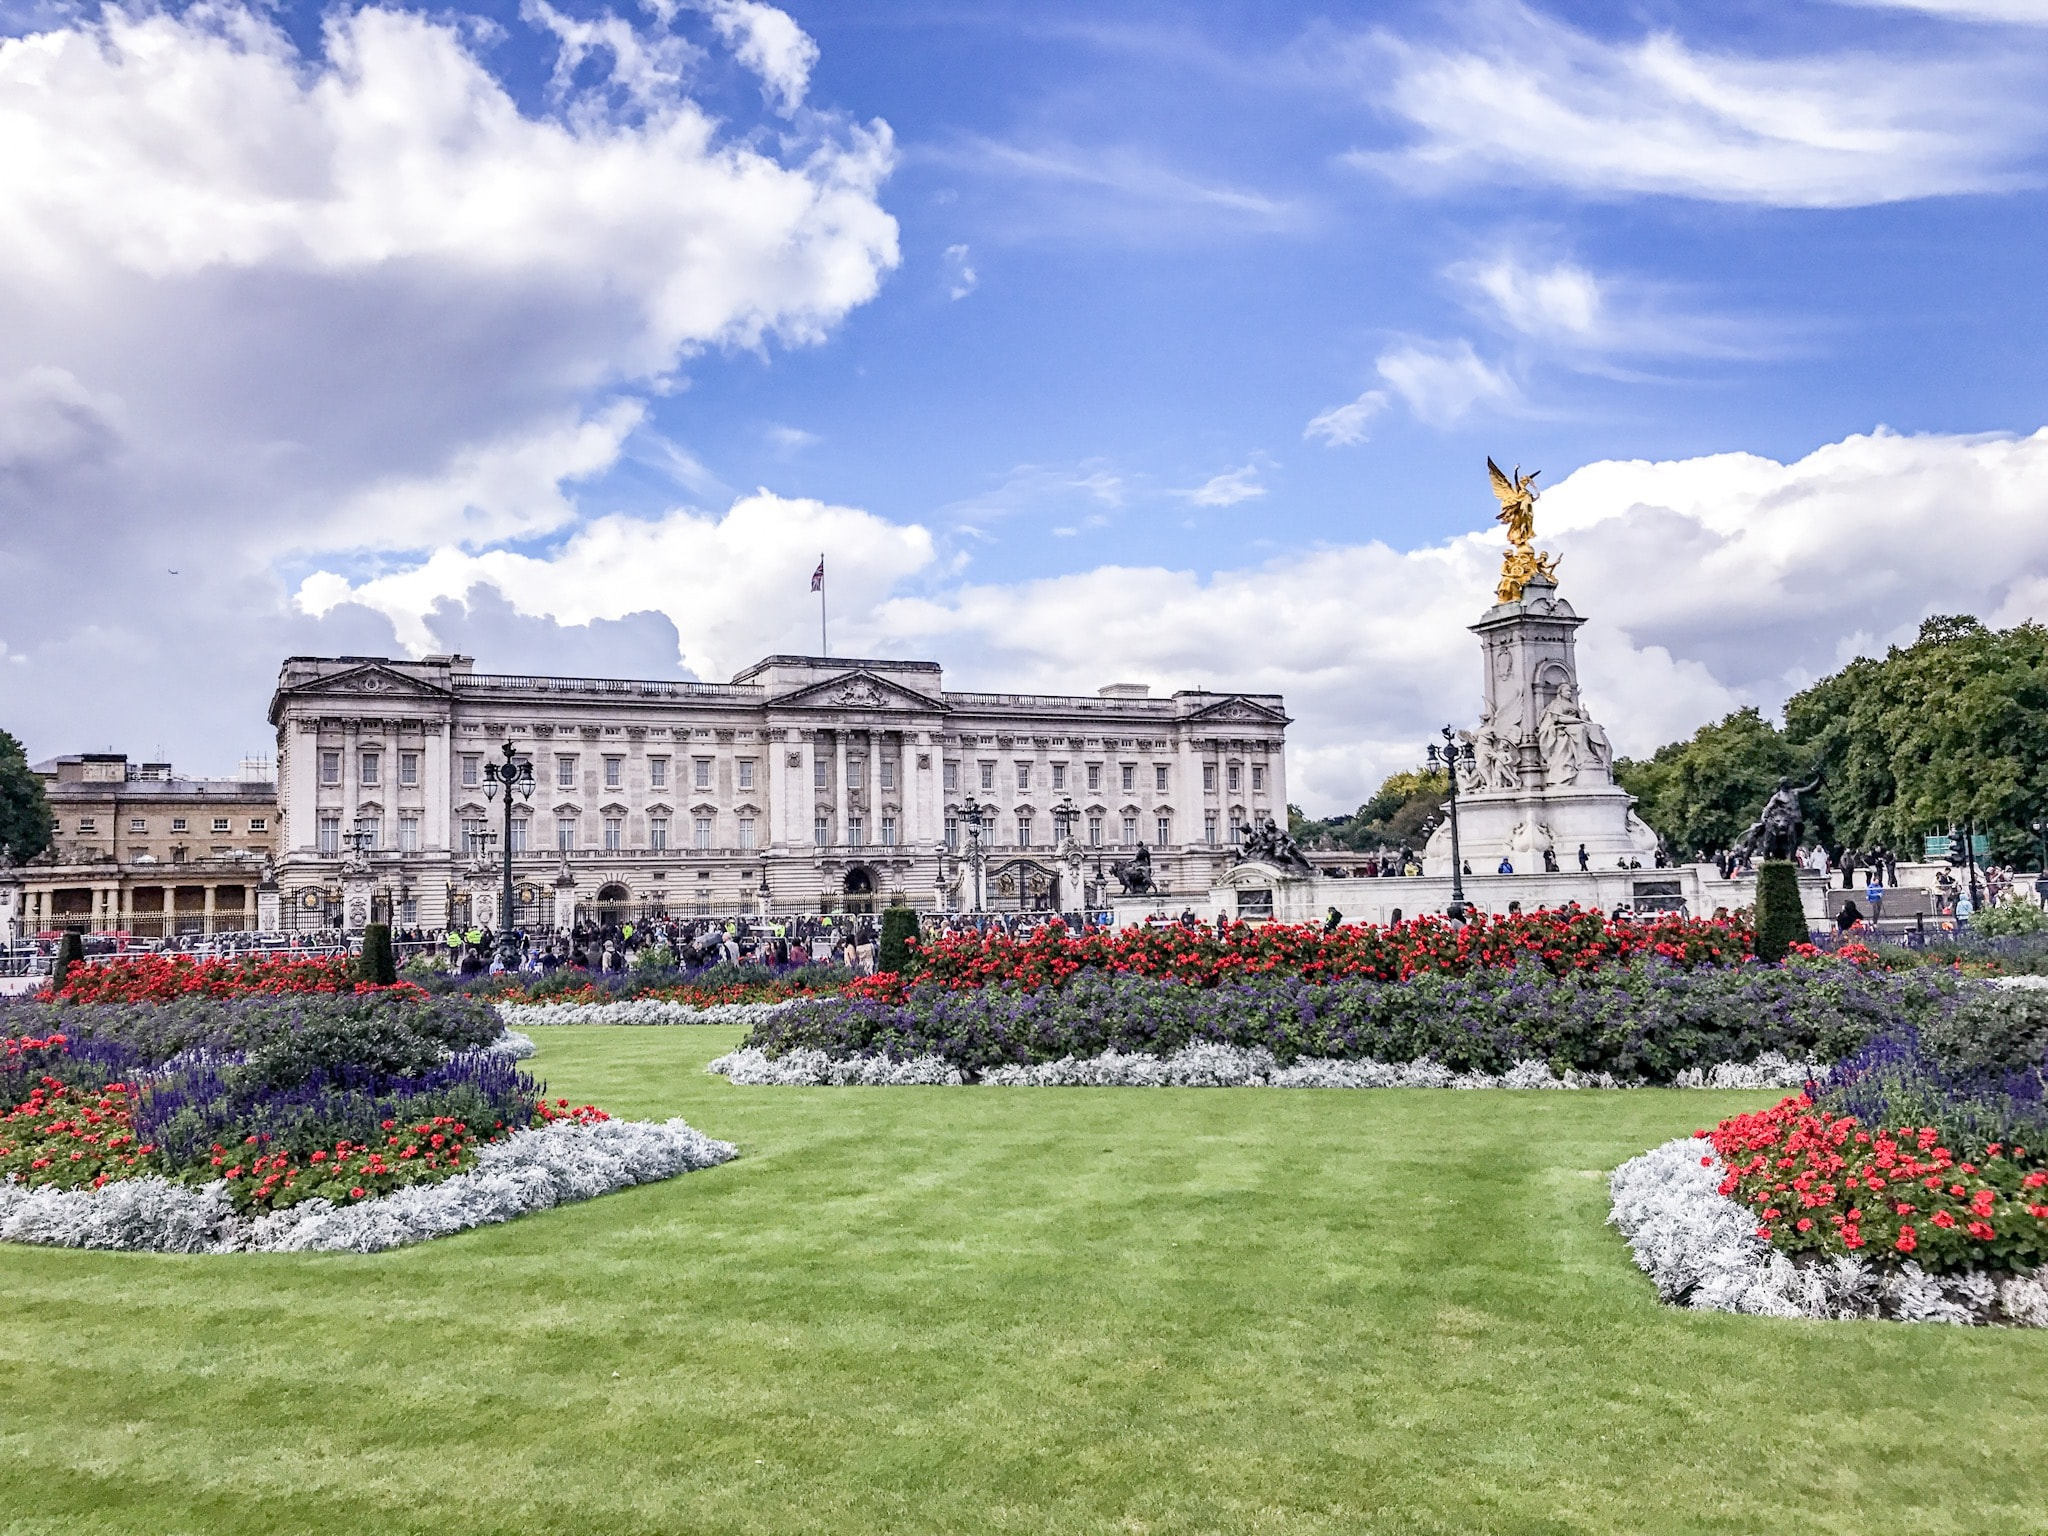 2 Tage in London - Buckingham Palace